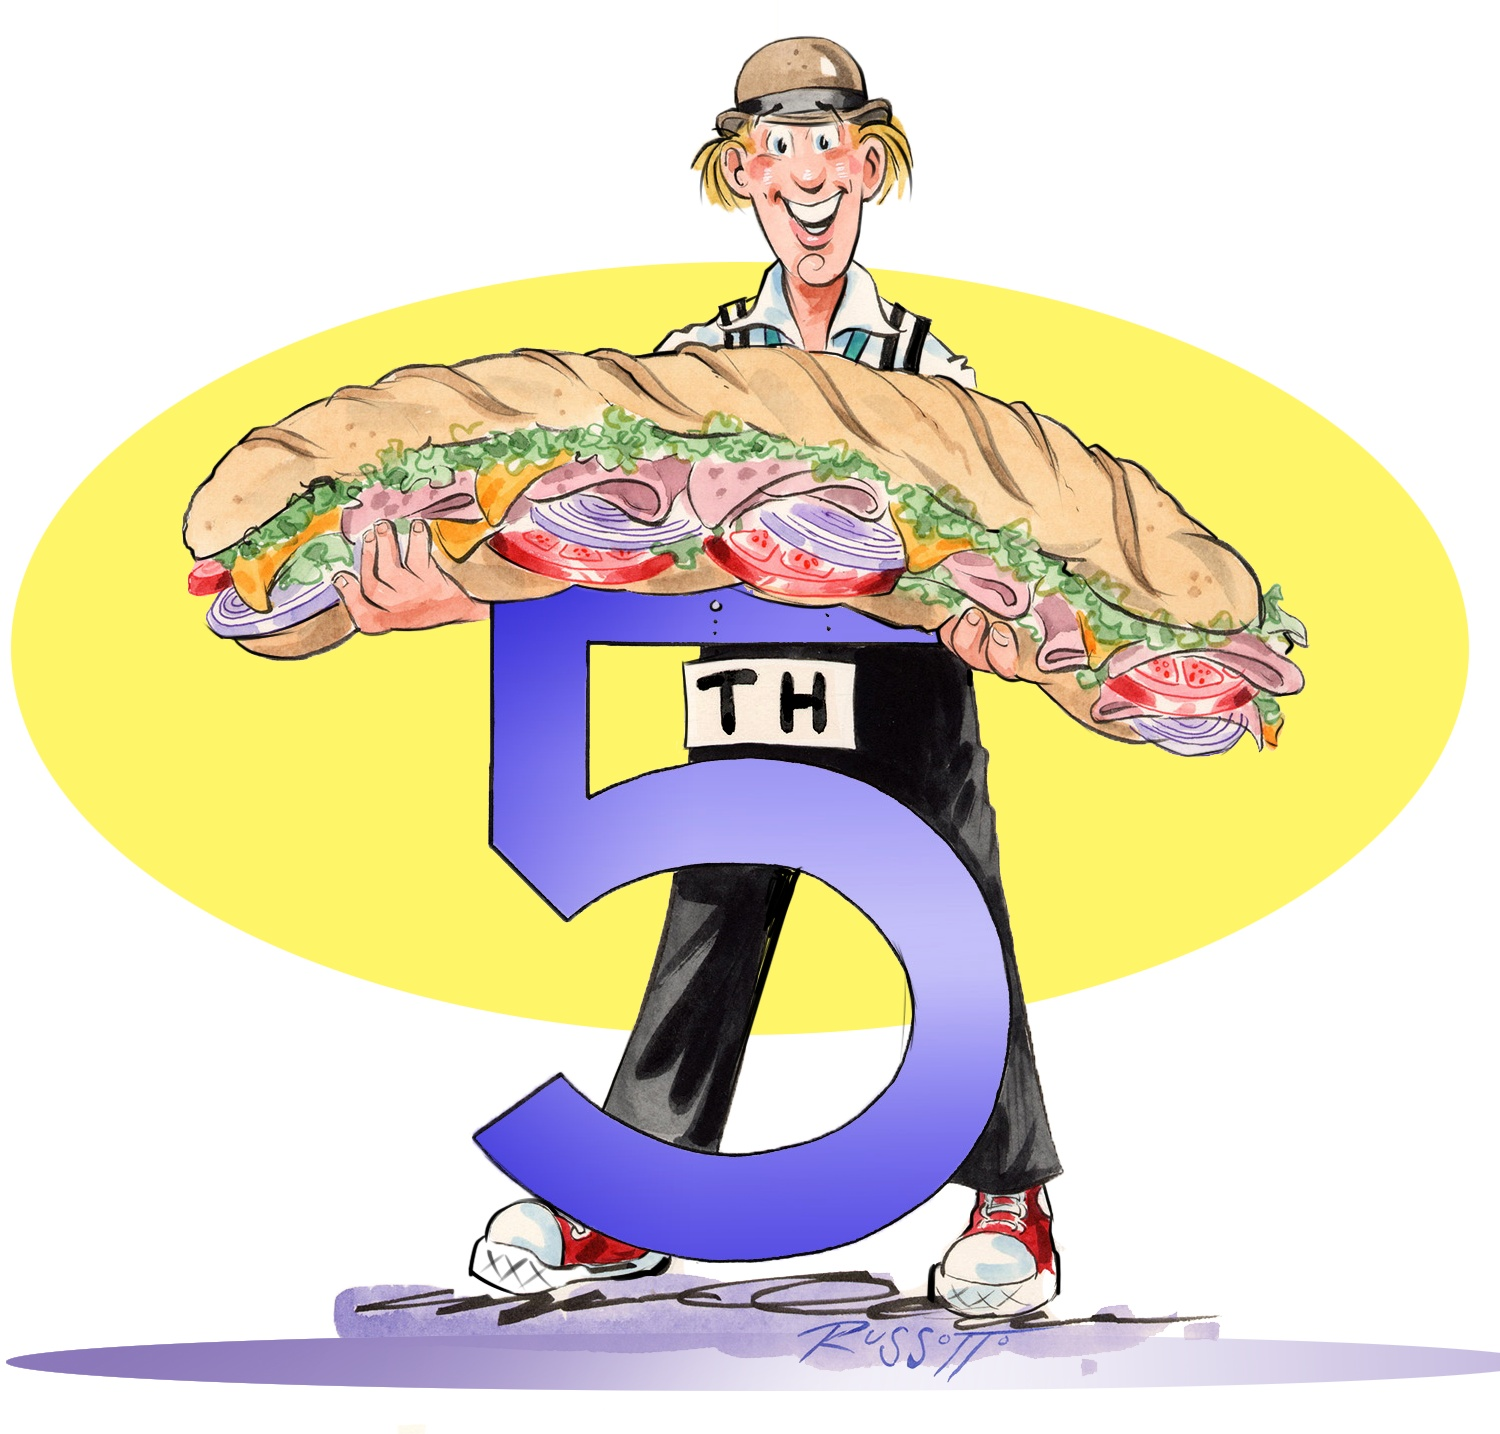 Cartoon Mascot created for Fresh on 5th, a Deli in Miami Beach